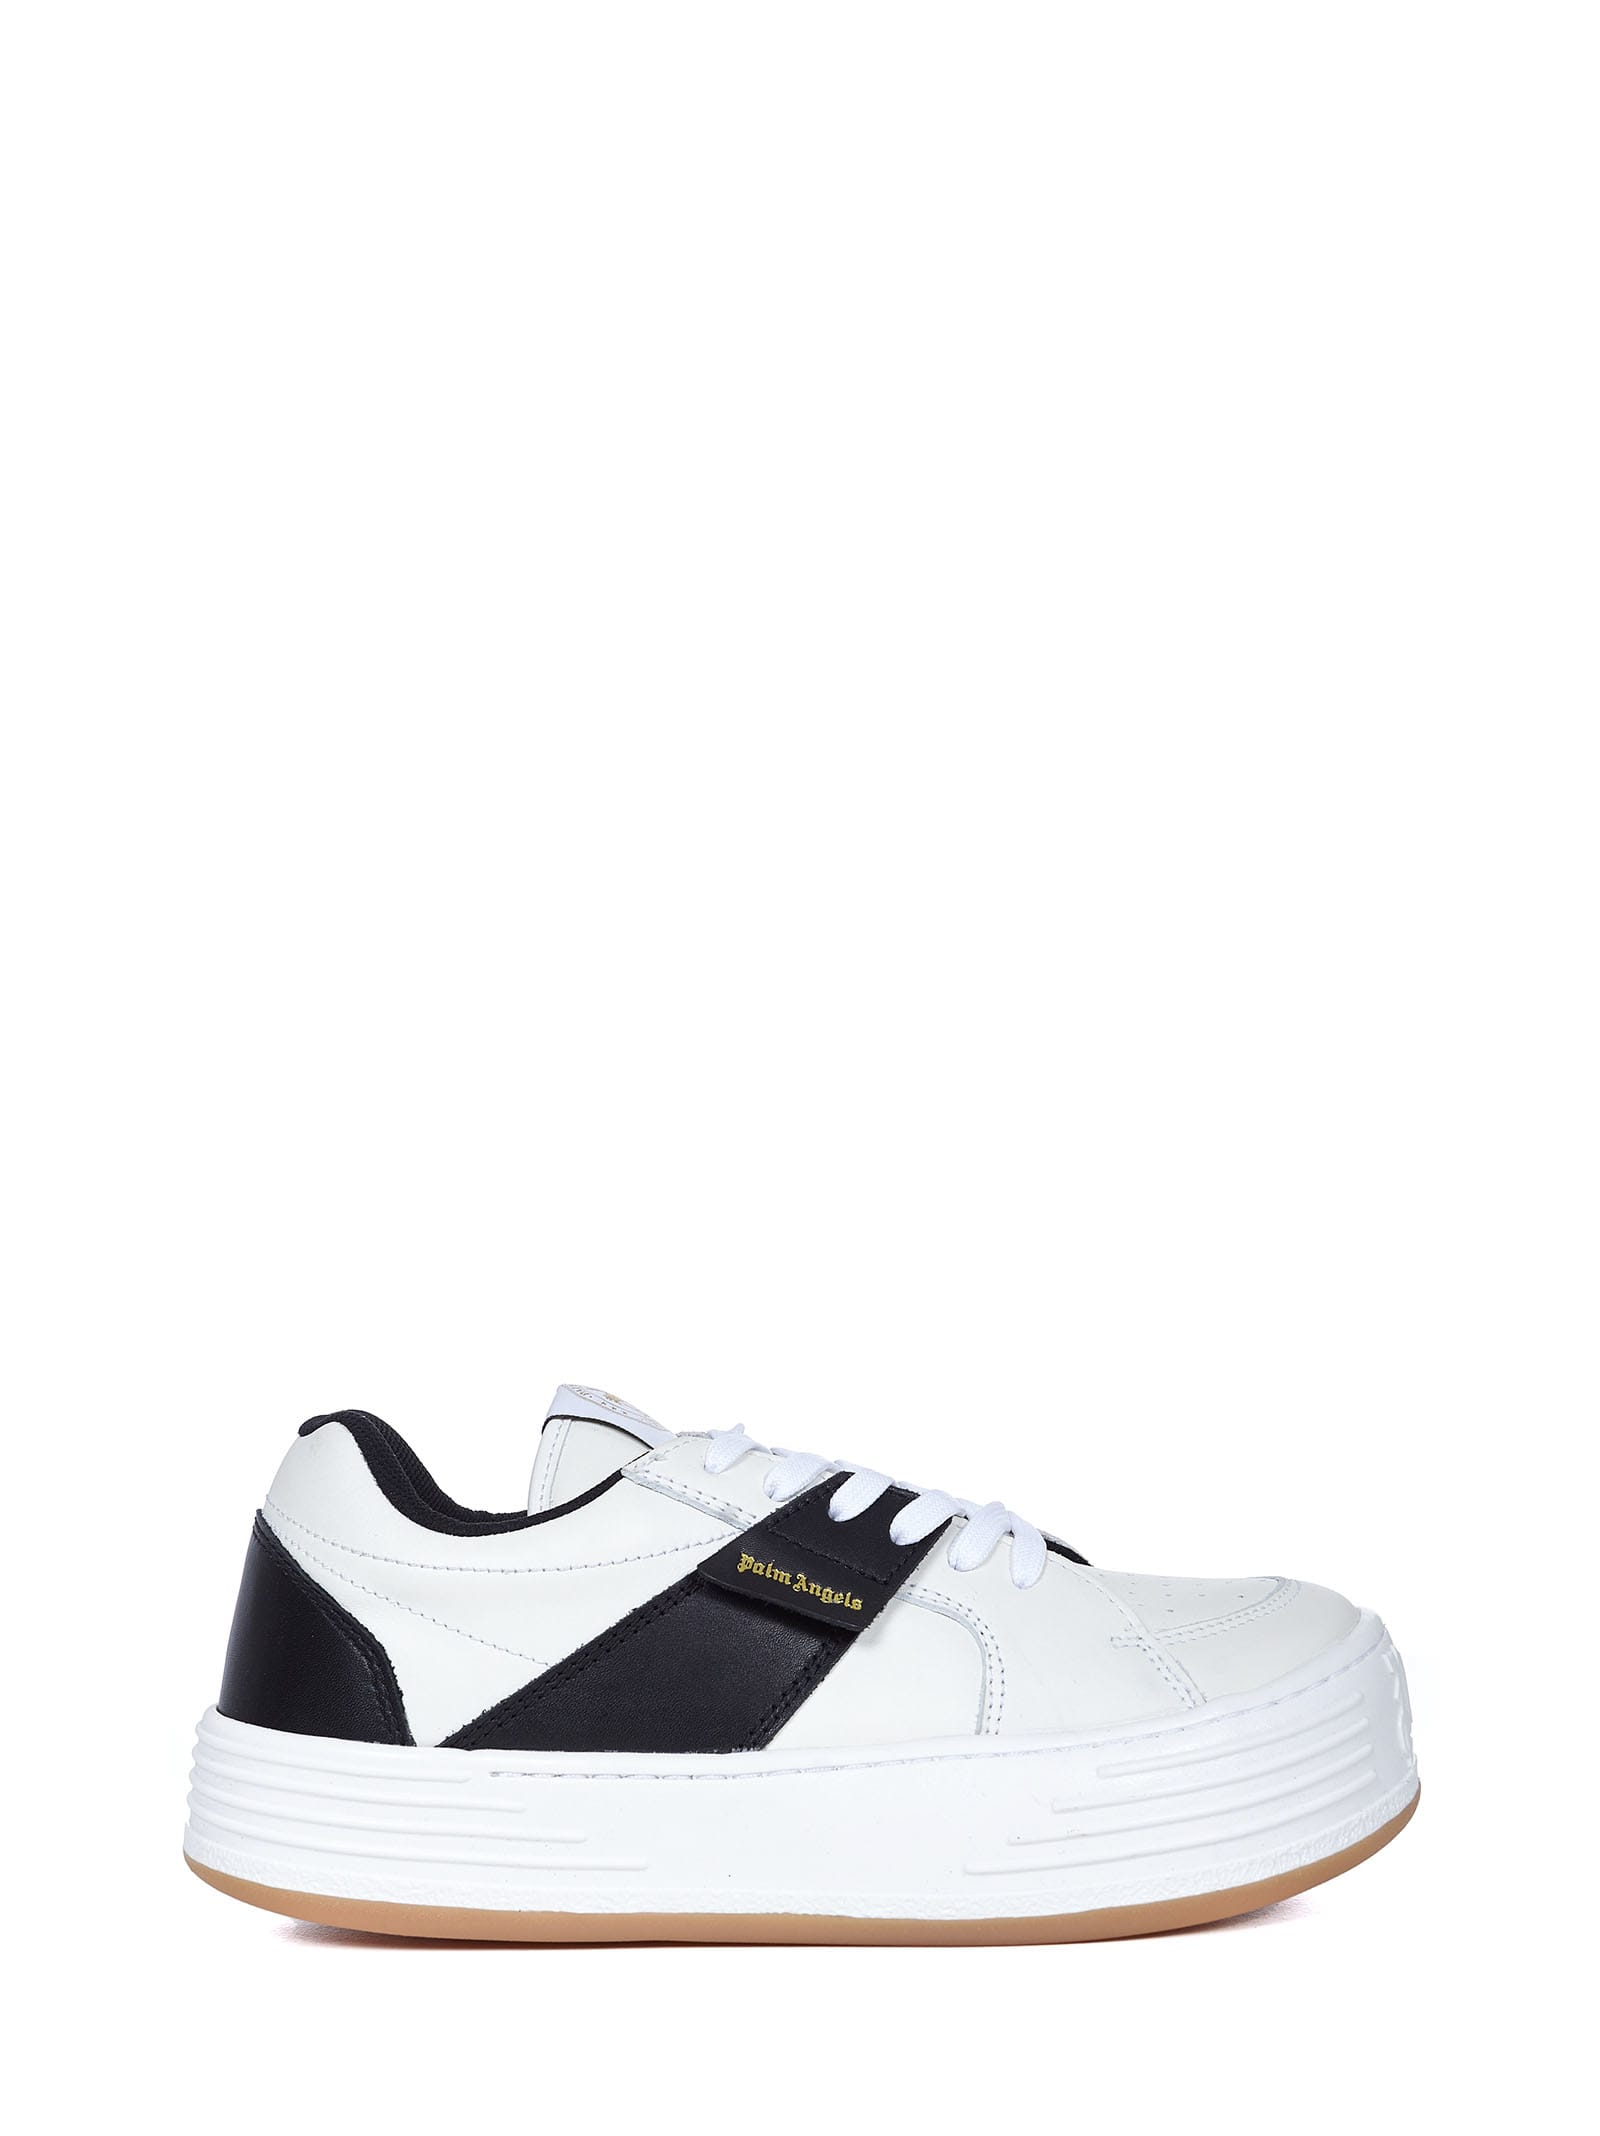 Palm Angels Leathers SNEAKERS